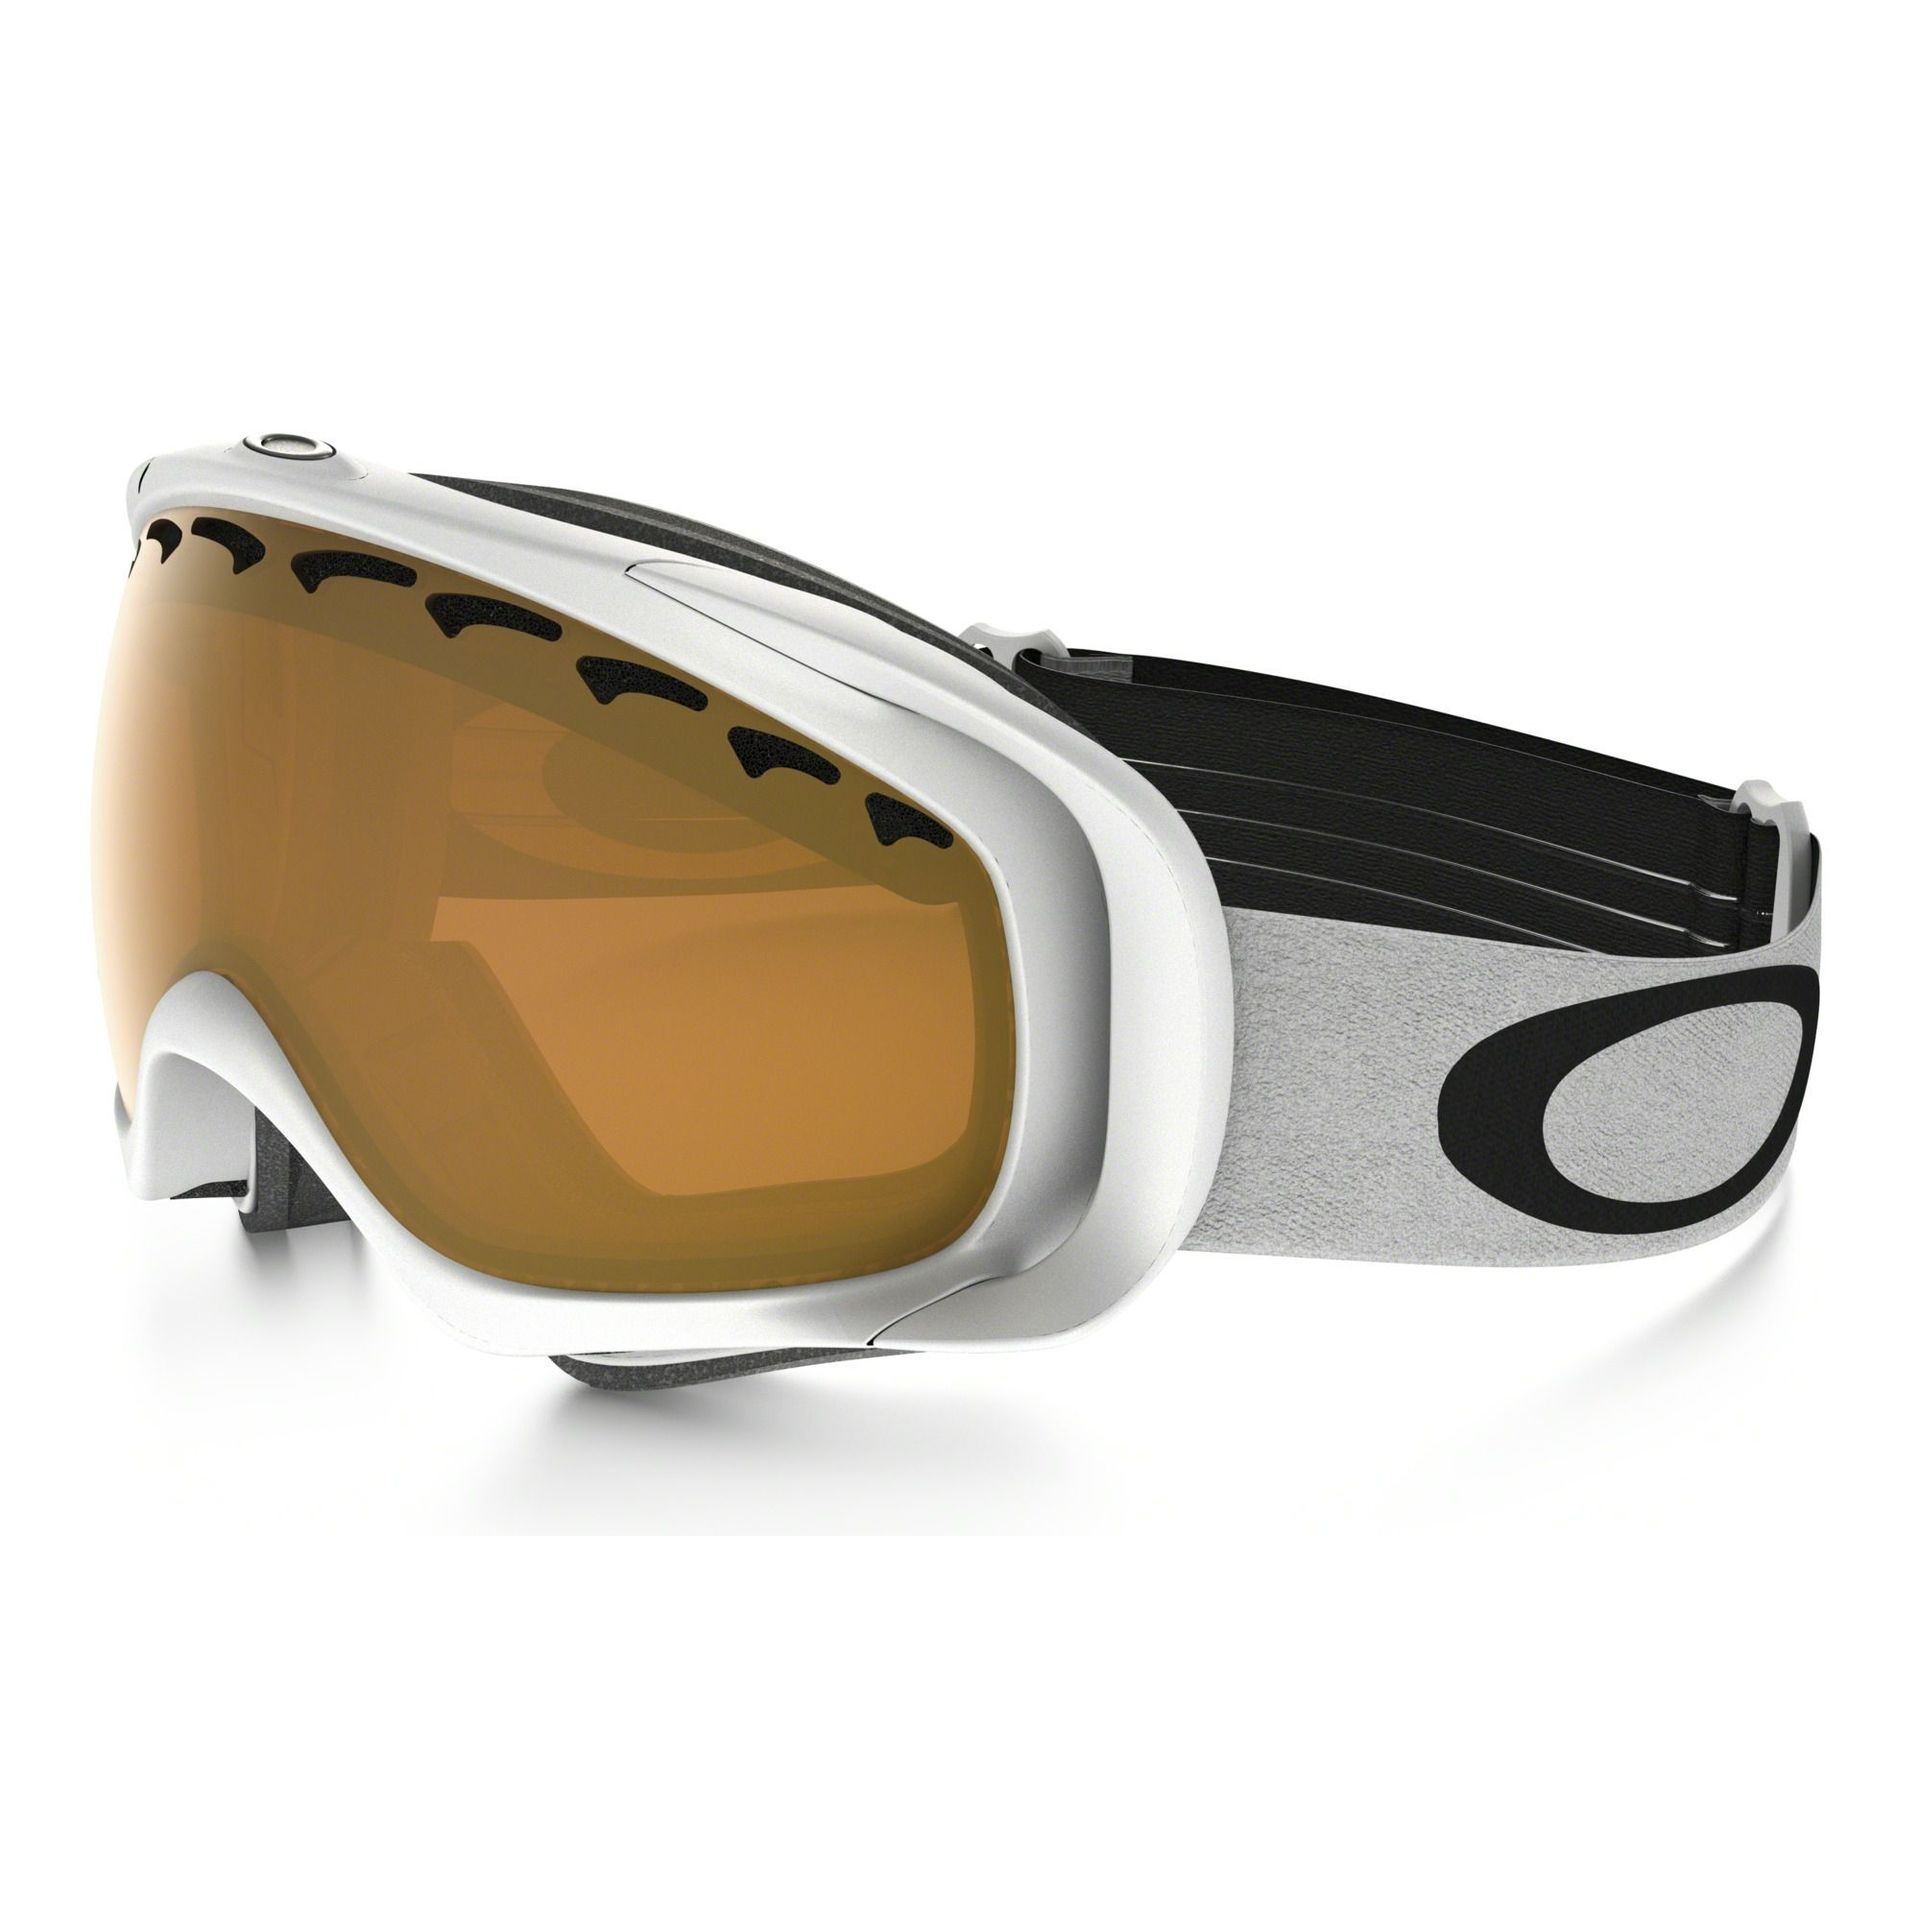 GOGLE SNOW OAKLEY CROWBAR MATTE WHITE|PERSIMMON